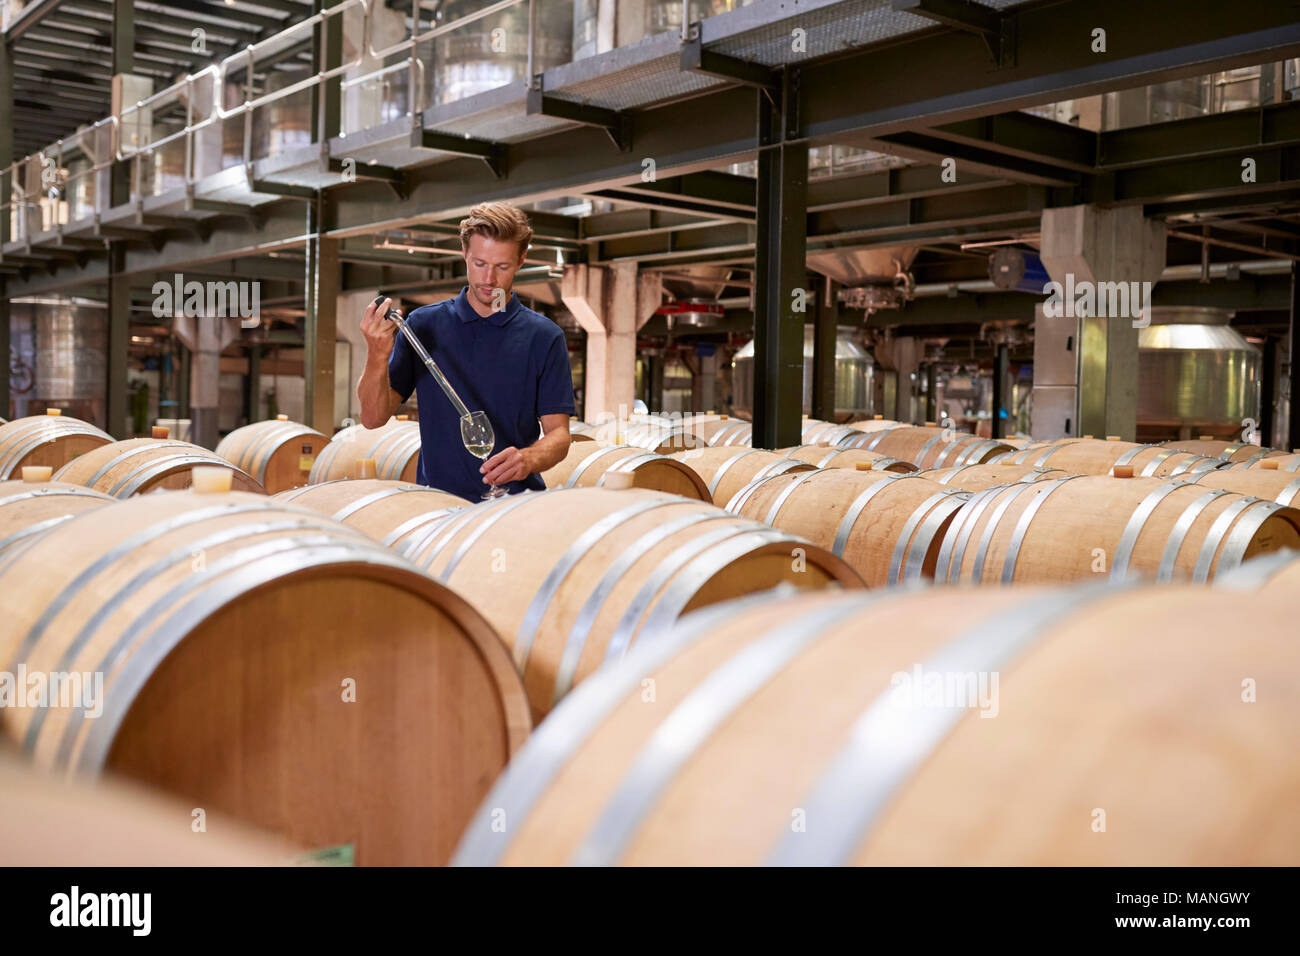 Young man testing wine in a wine factory warehouse - Stock Image